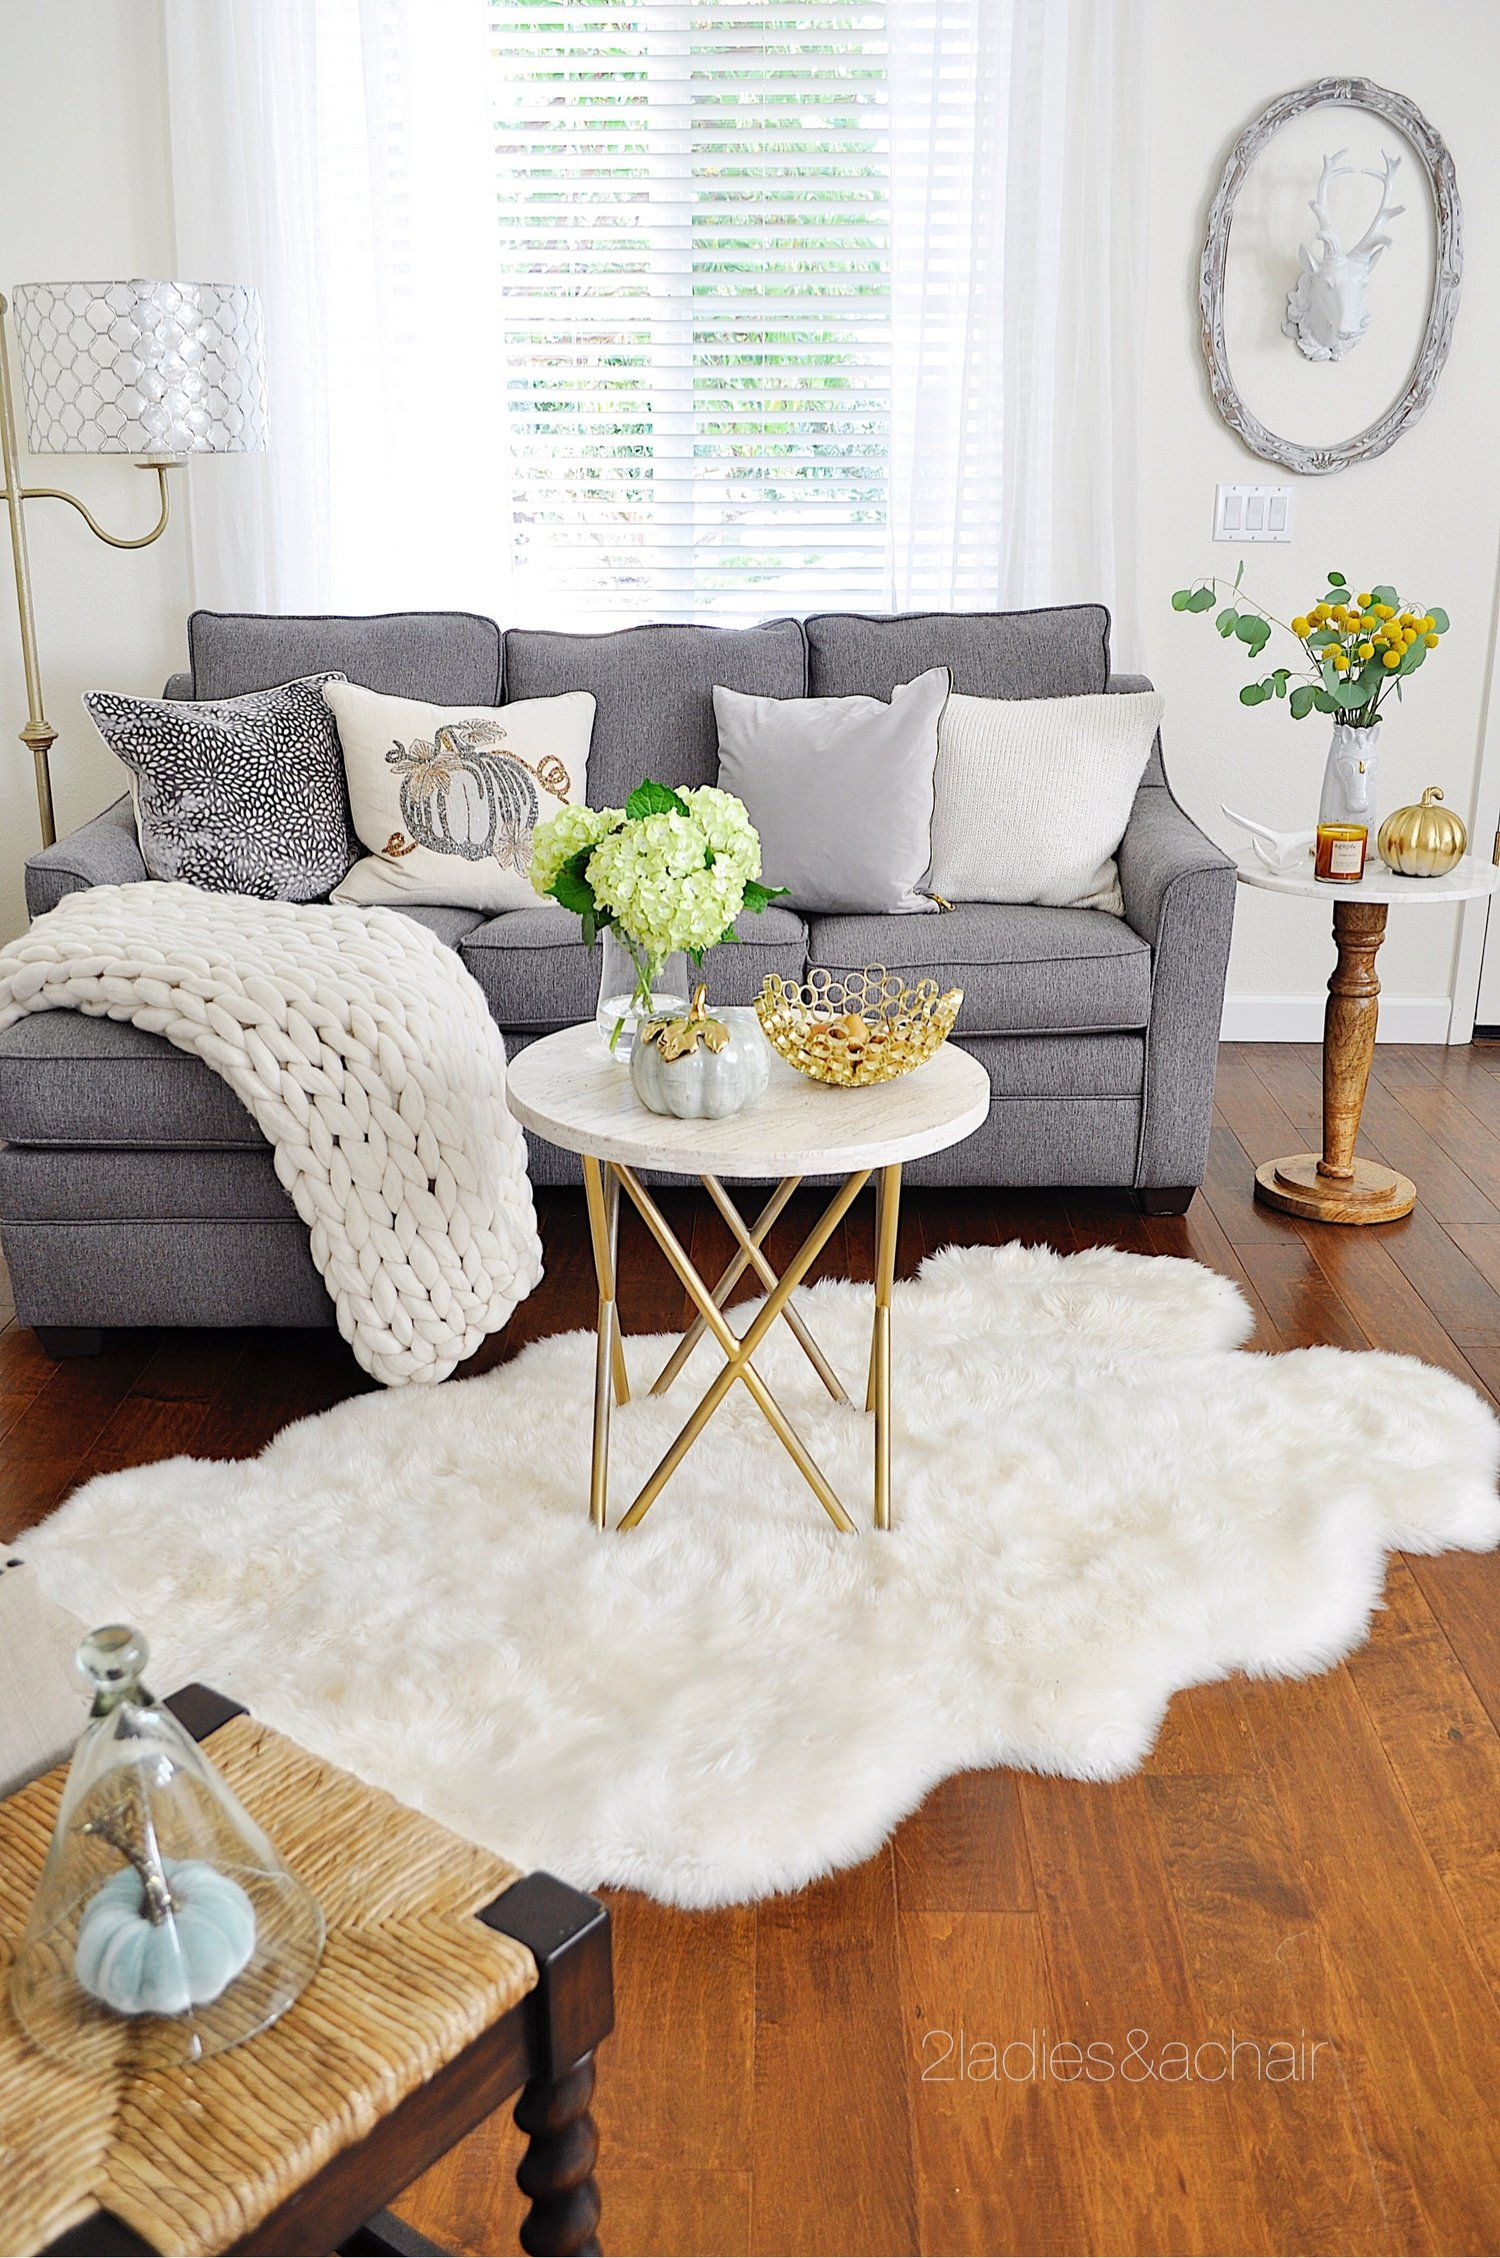 Sep 19 Neutral Living Room Decor for Fall | Pinterest | Neutral ...